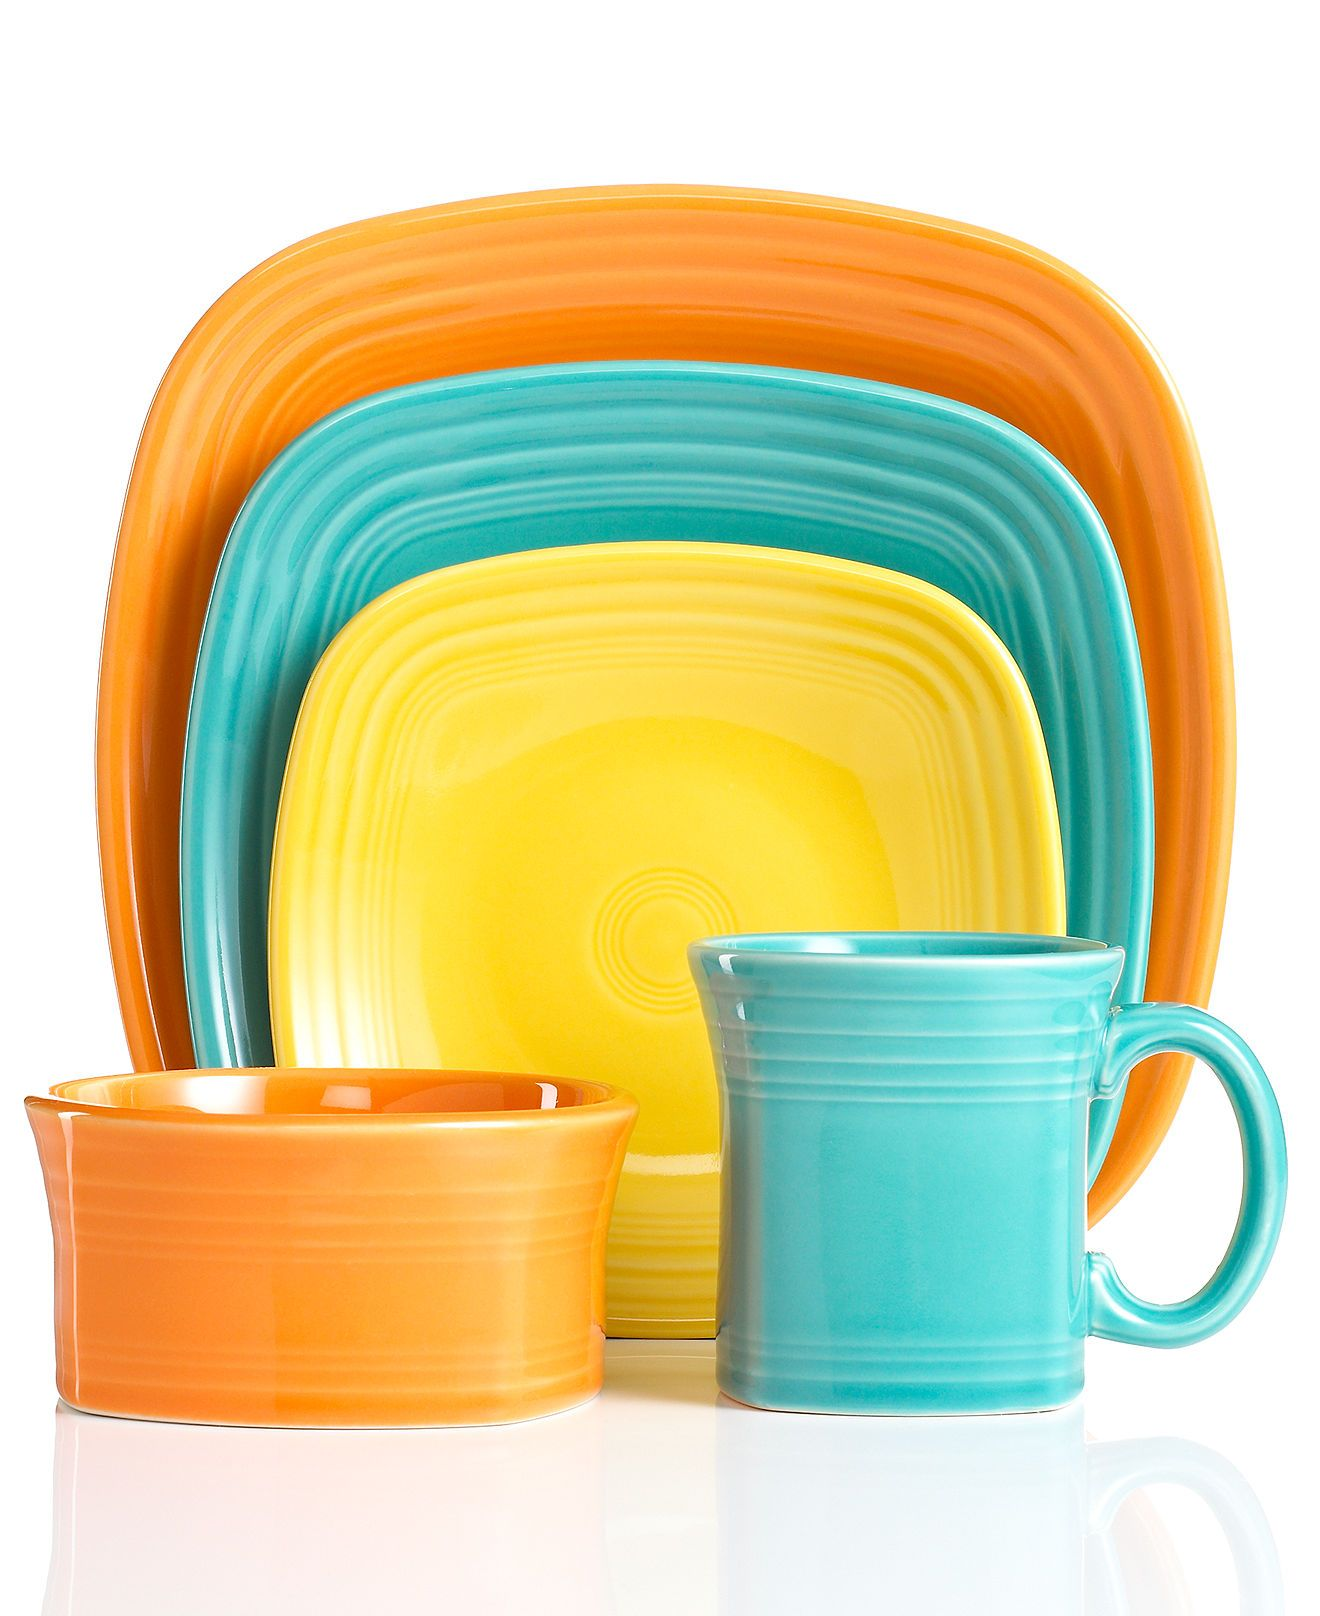 Fiesta Dinnerware for my home.